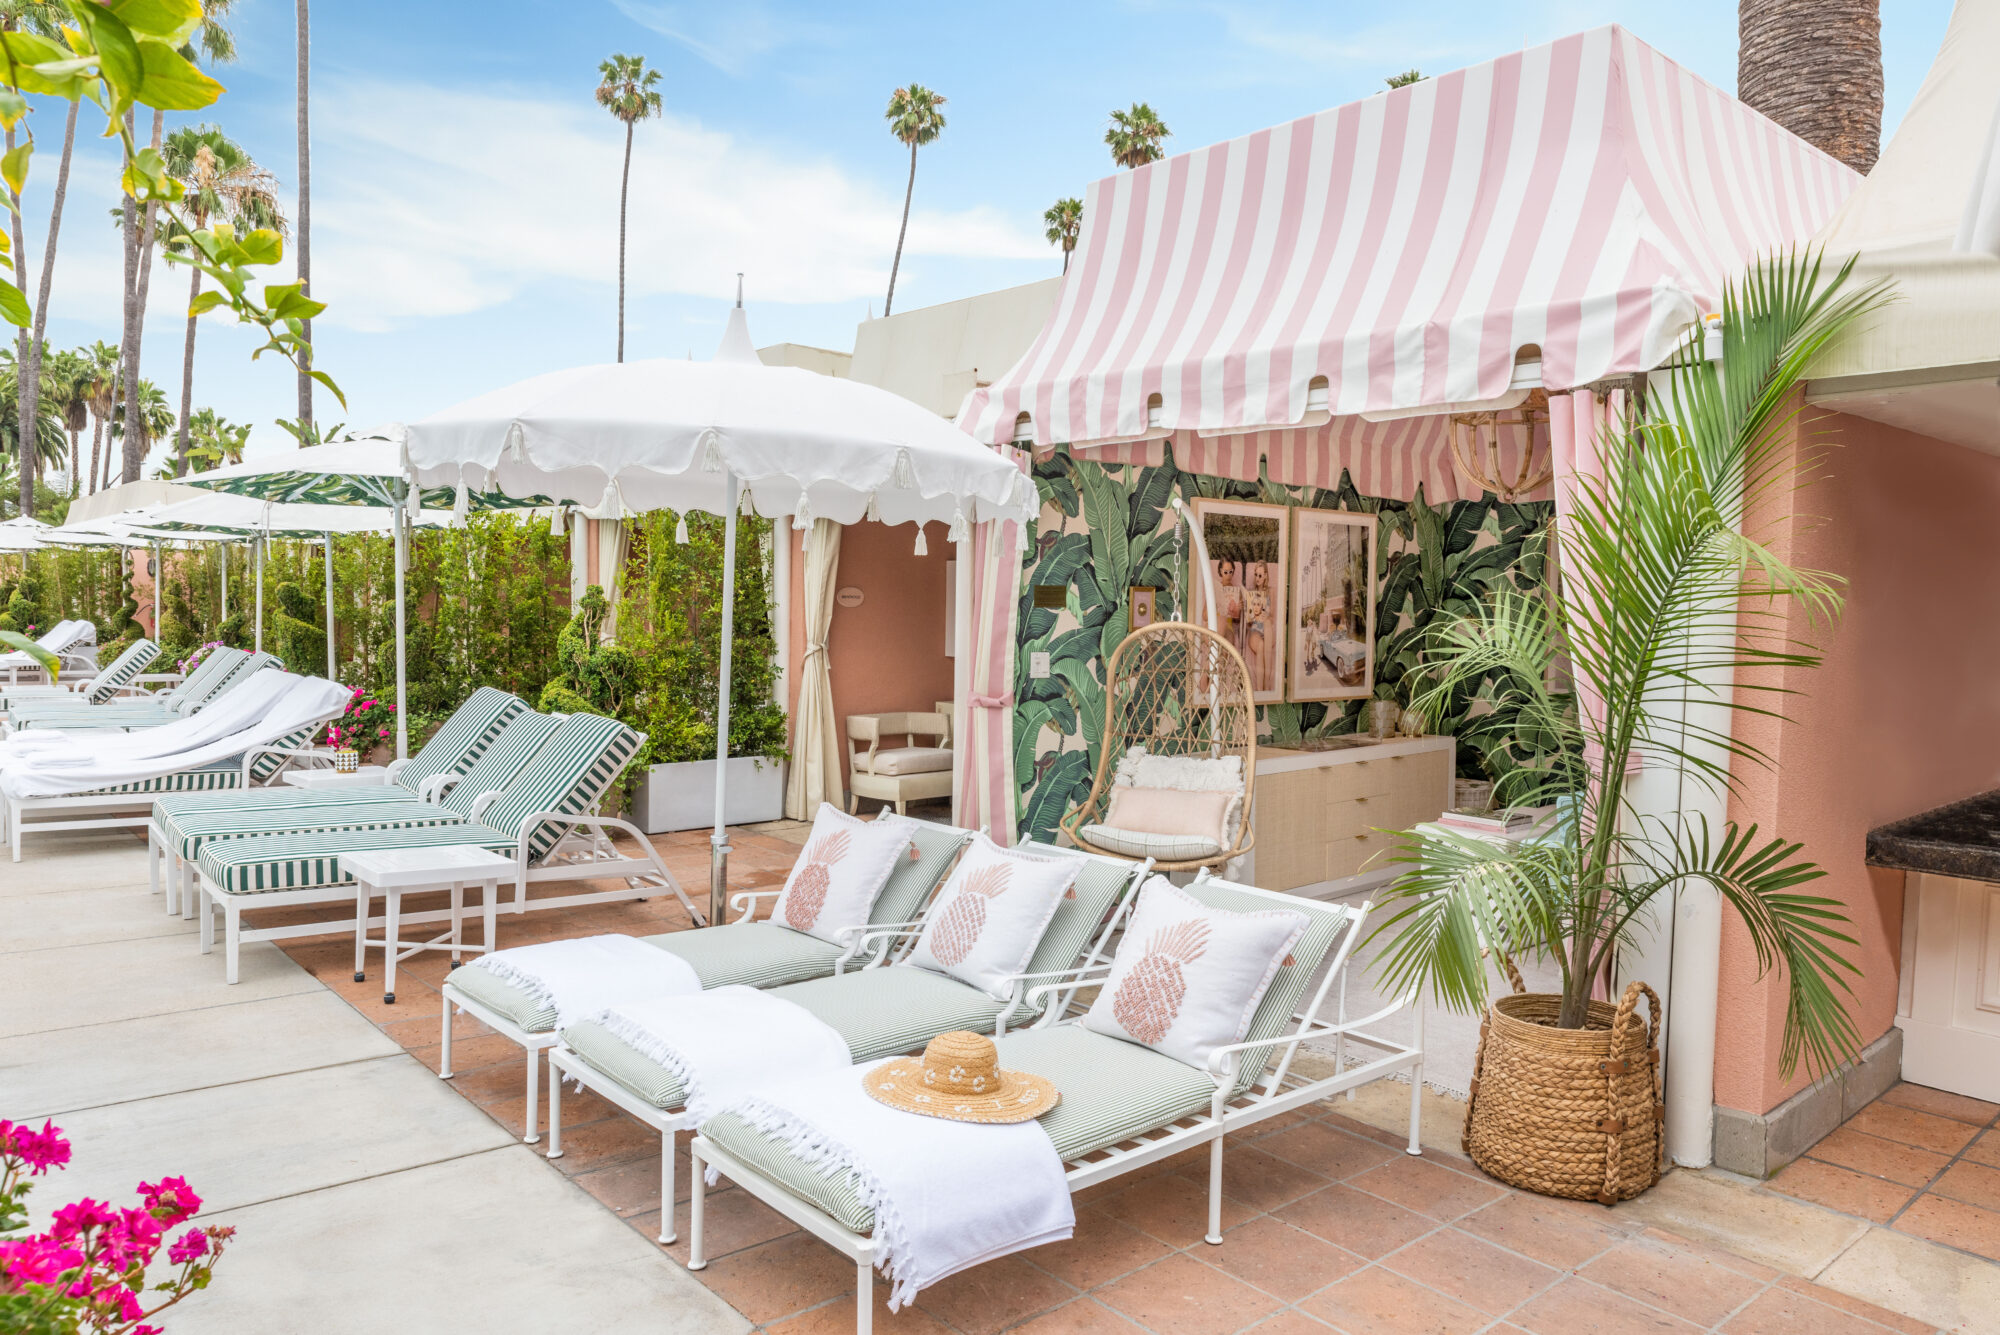 Tall palm trees poke out of the backdrop behind the retro cabana